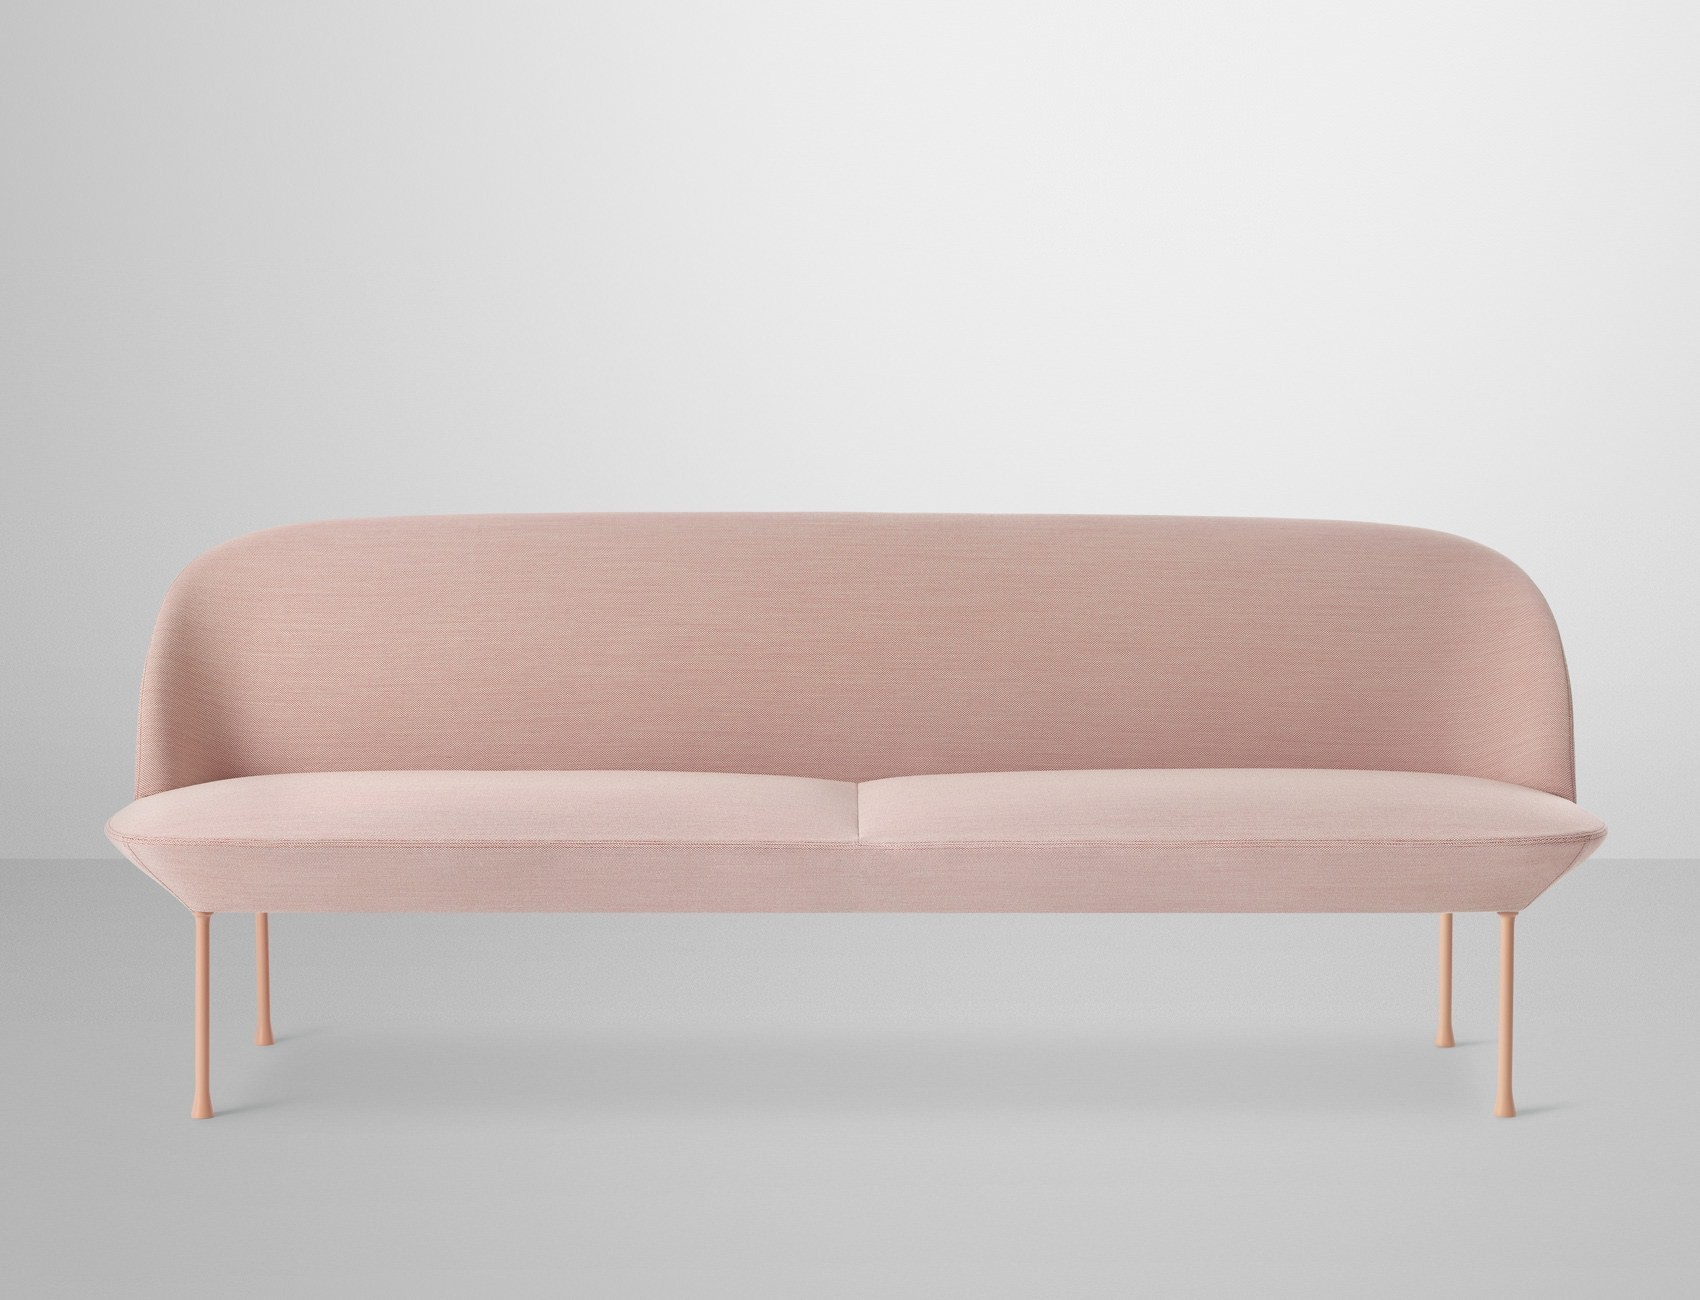 muuto sofa simple the oslo sofa is designed by anderssen u voll and becomes the third sofa. Black Bedroom Furniture Sets. Home Design Ideas